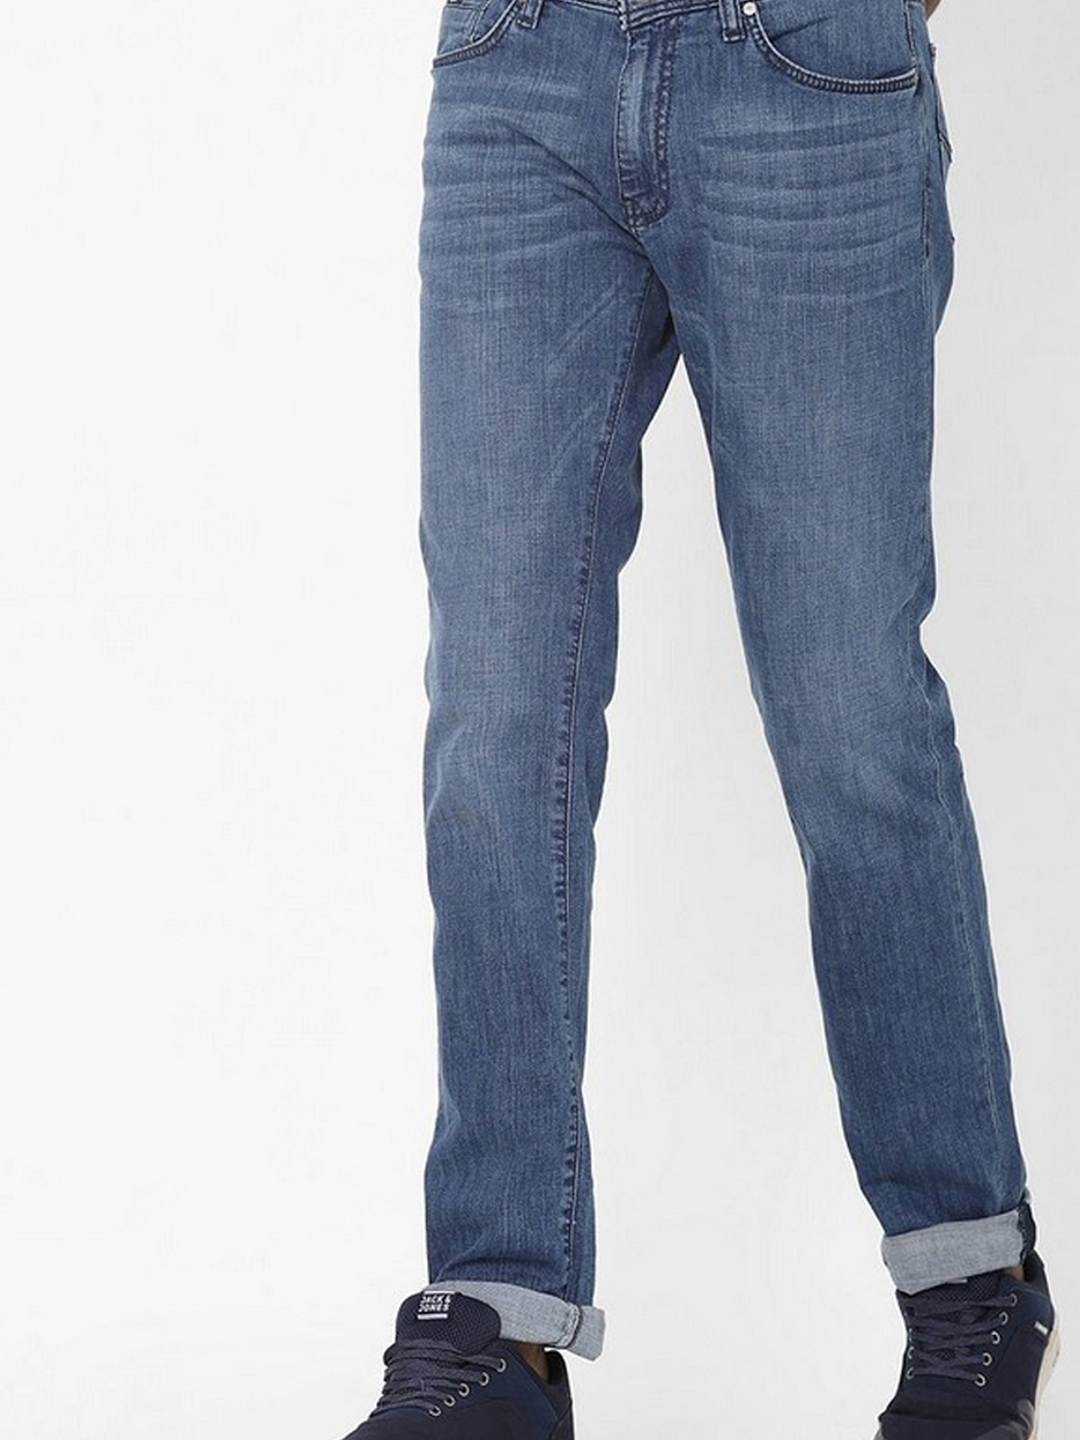 Men's Albert S.Taylor Slim Fit Blue Jeans